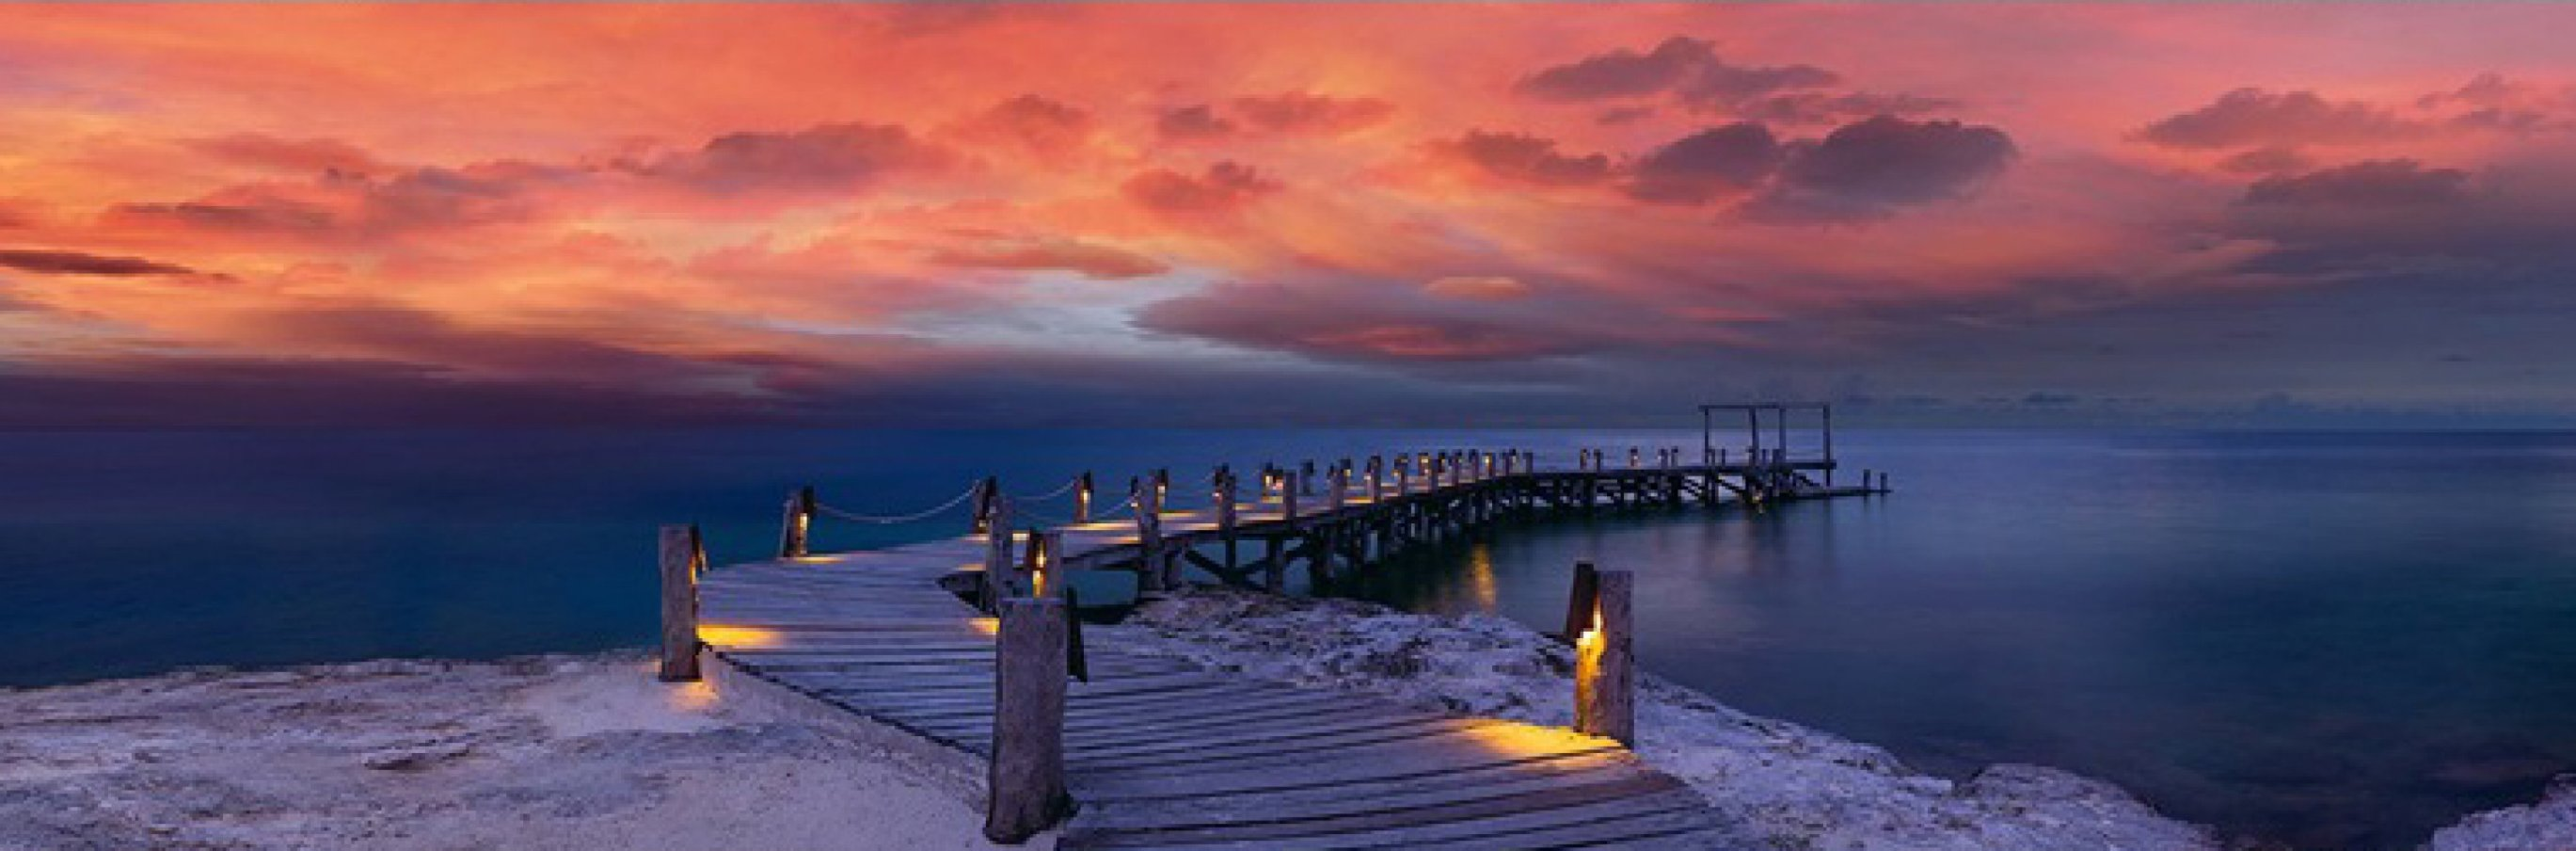 Enchanted Jetty 1.5M Huge Panorama by Peter Lik